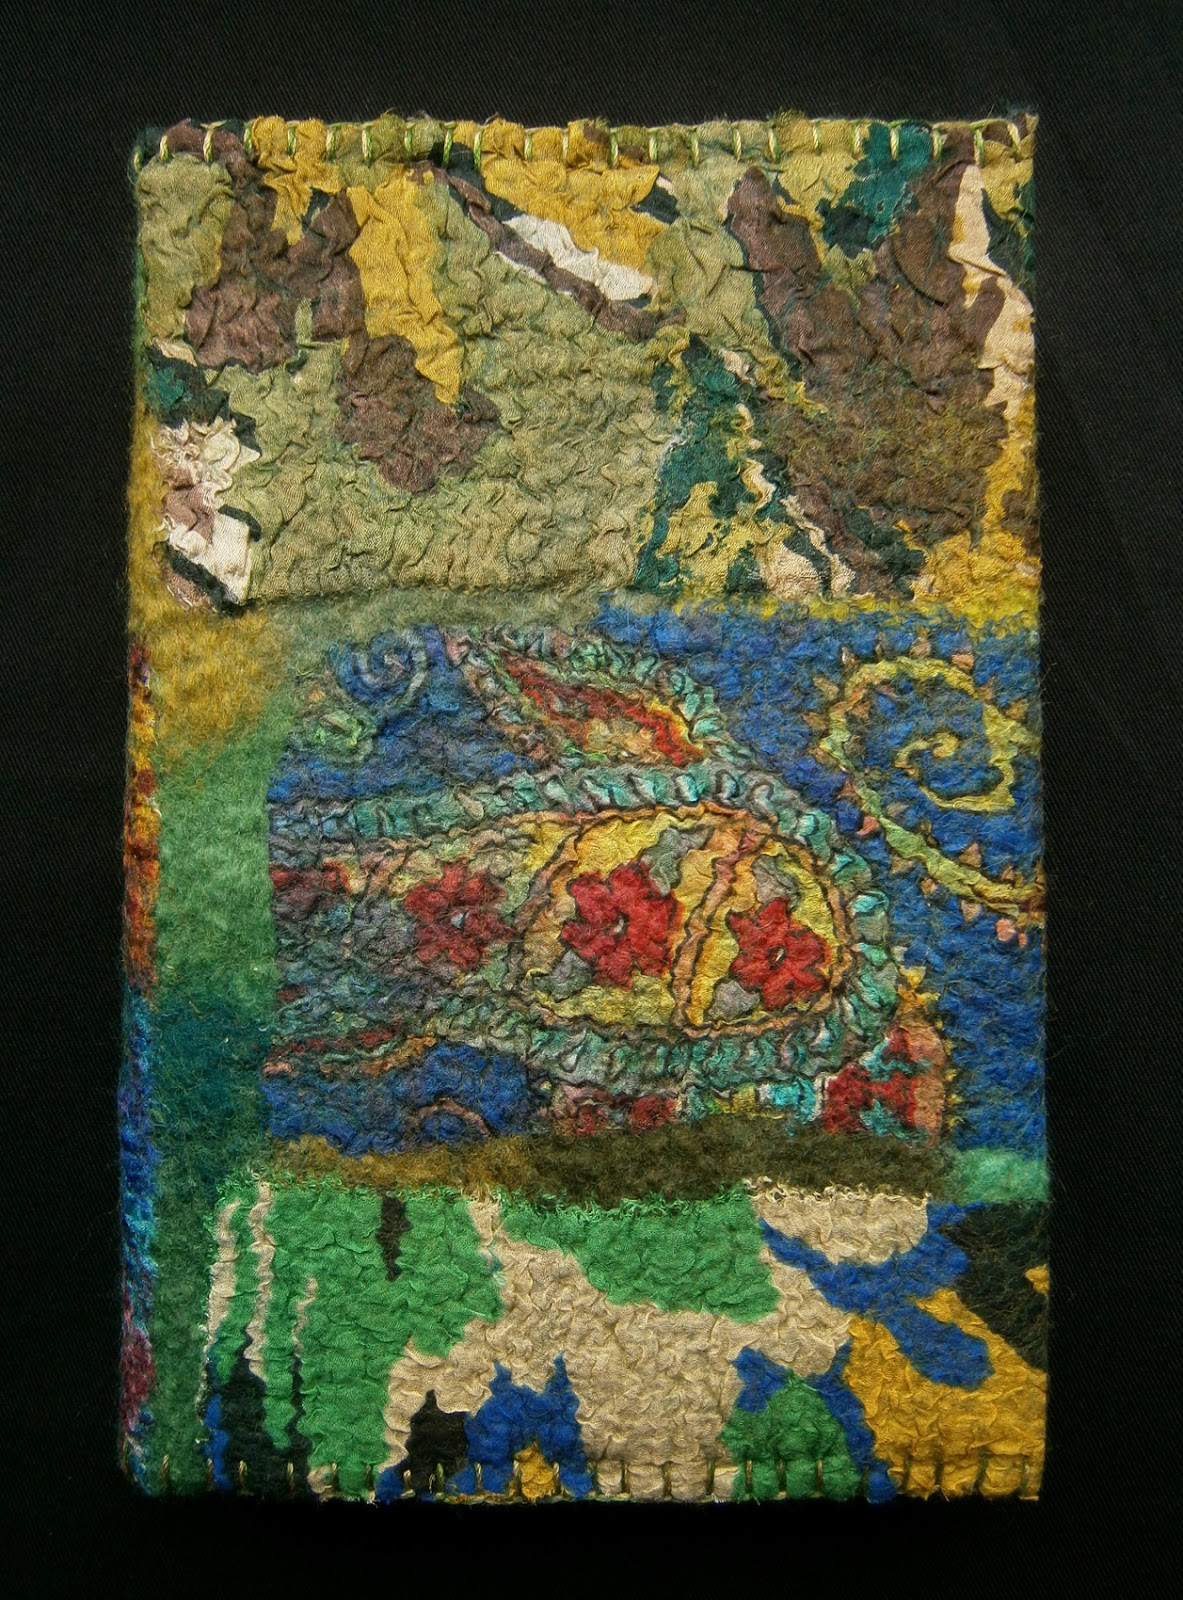 Handmade Felt Book Cover : Felt by zed handmade book covers